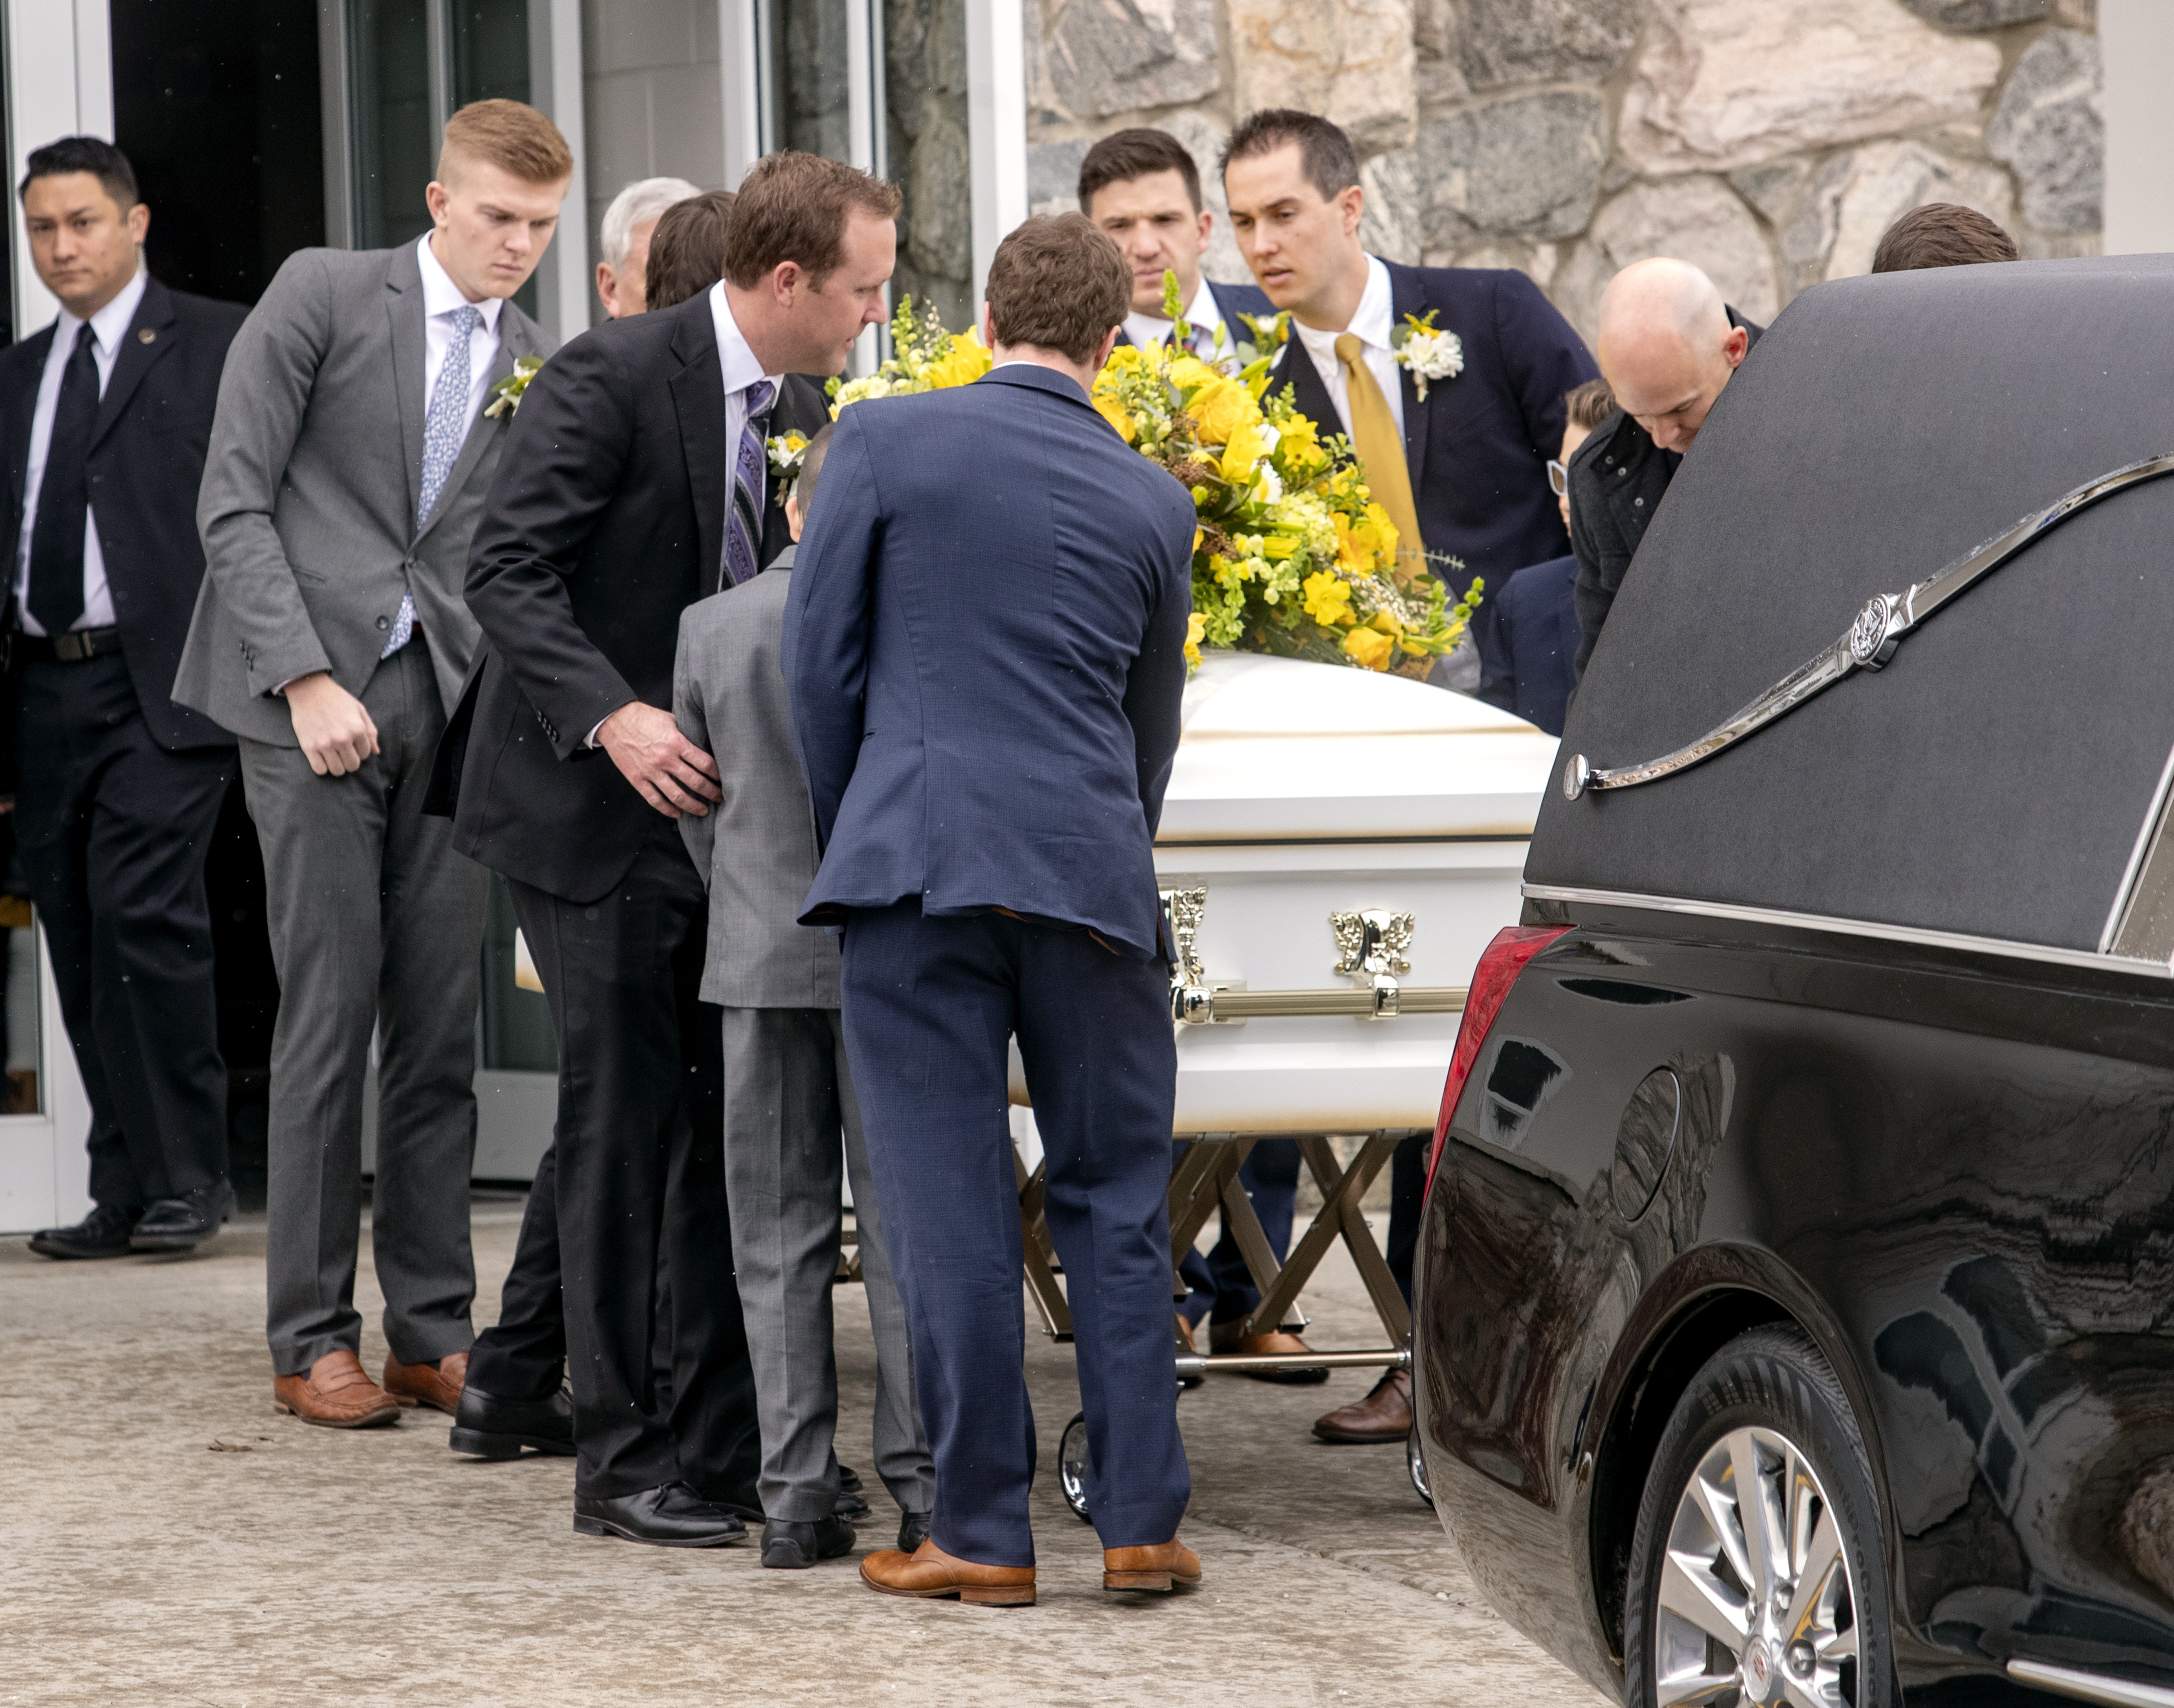 The casket of Wendy Nelson Maxfield is lifted and placed into the hearse after funeral services in the the Cottonwood Heights Utah Brighton Stake Center on Saturday, Jan. 19, 2019.